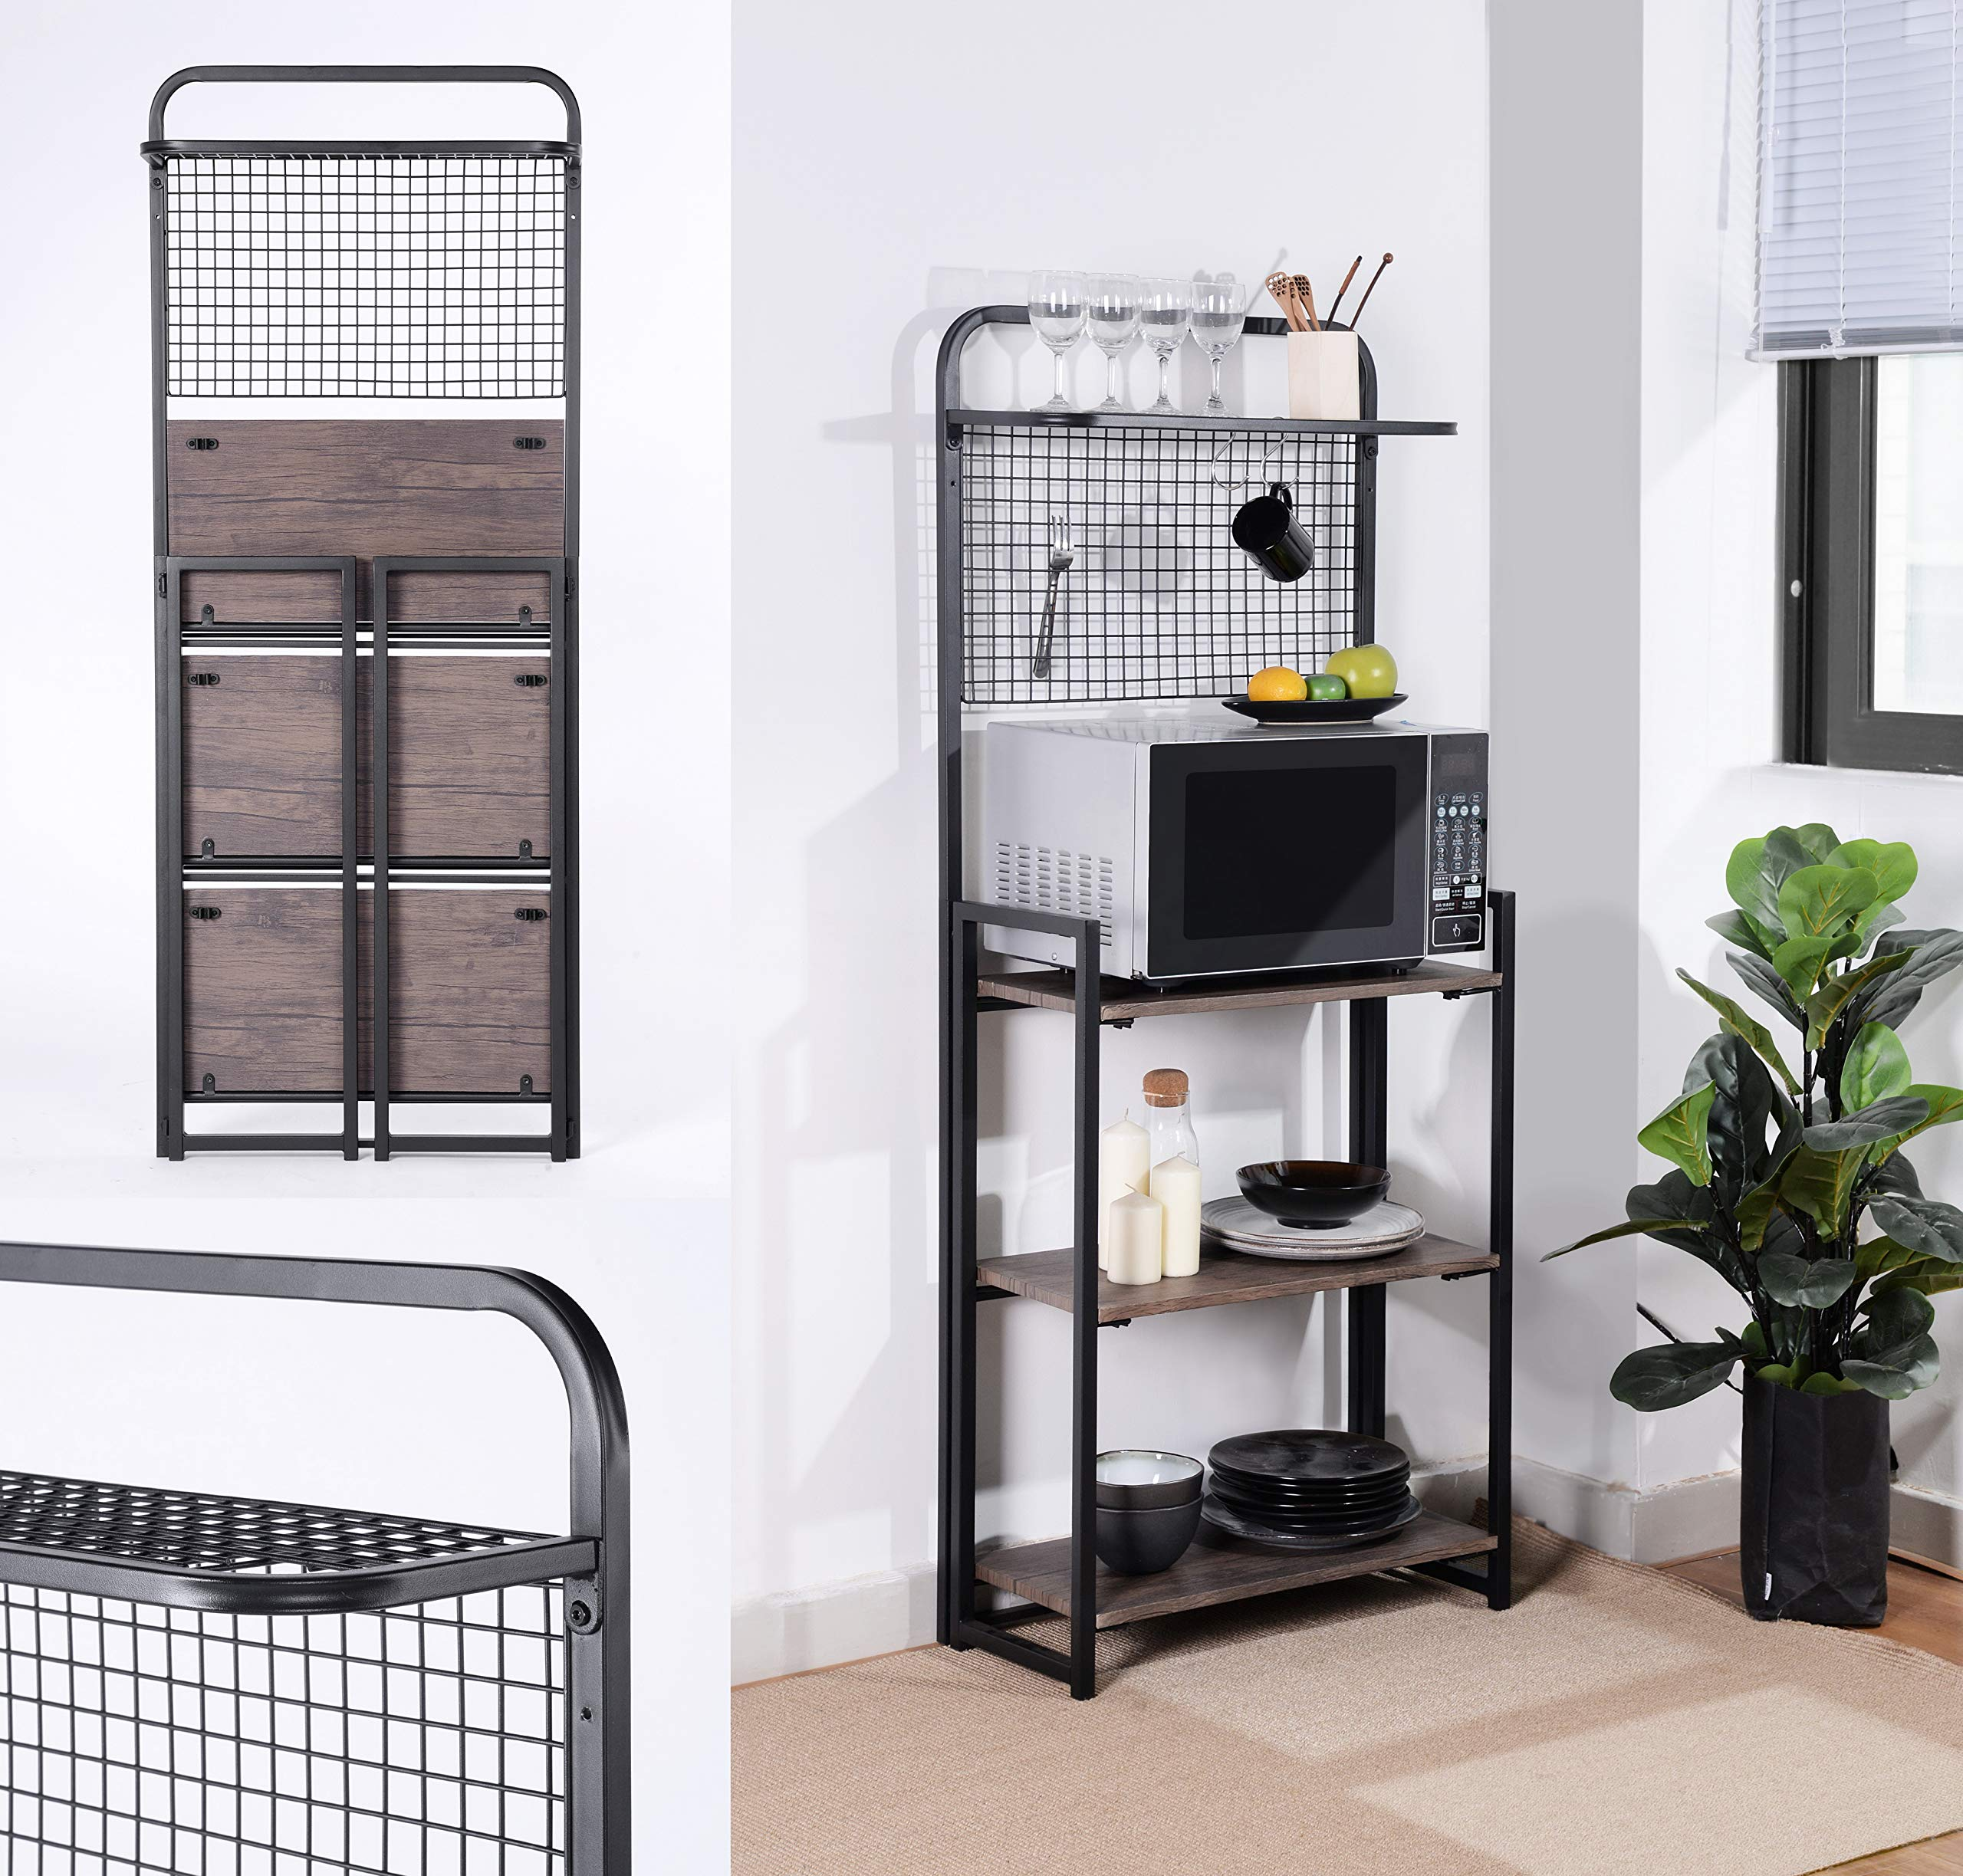 4-Tier Shelves Black Metal Dark Brown Finish Shelf Kitchen Bakers Rack Microwave Stand Foldable with Mesh Screen by Unknown